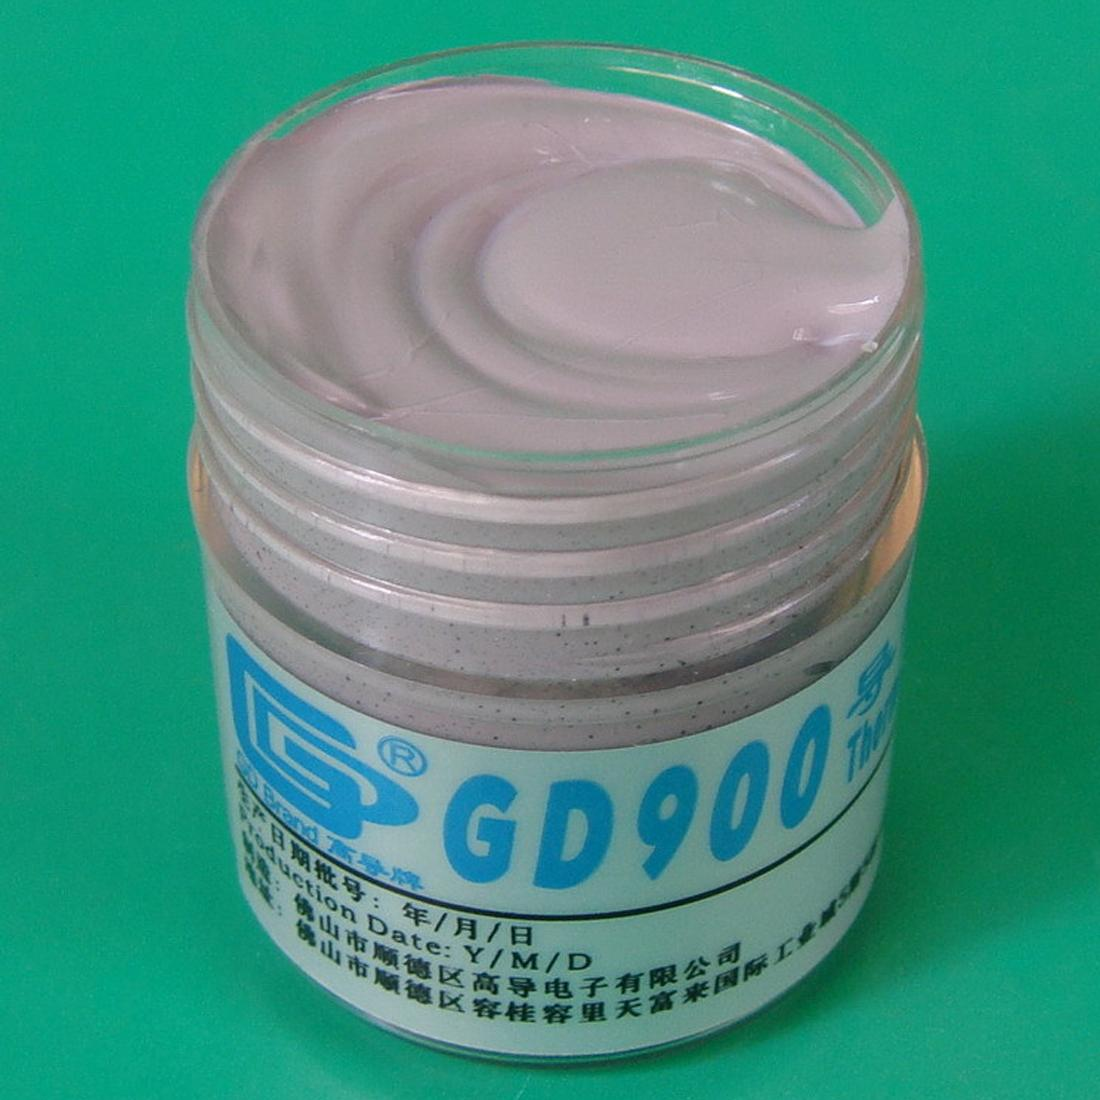 omputer & Office NOYOKERE Thermal Conductive Grease Paste Silicone GD900 Heatsink Compound Net Weight 30 Grams High Performance For CPU C...